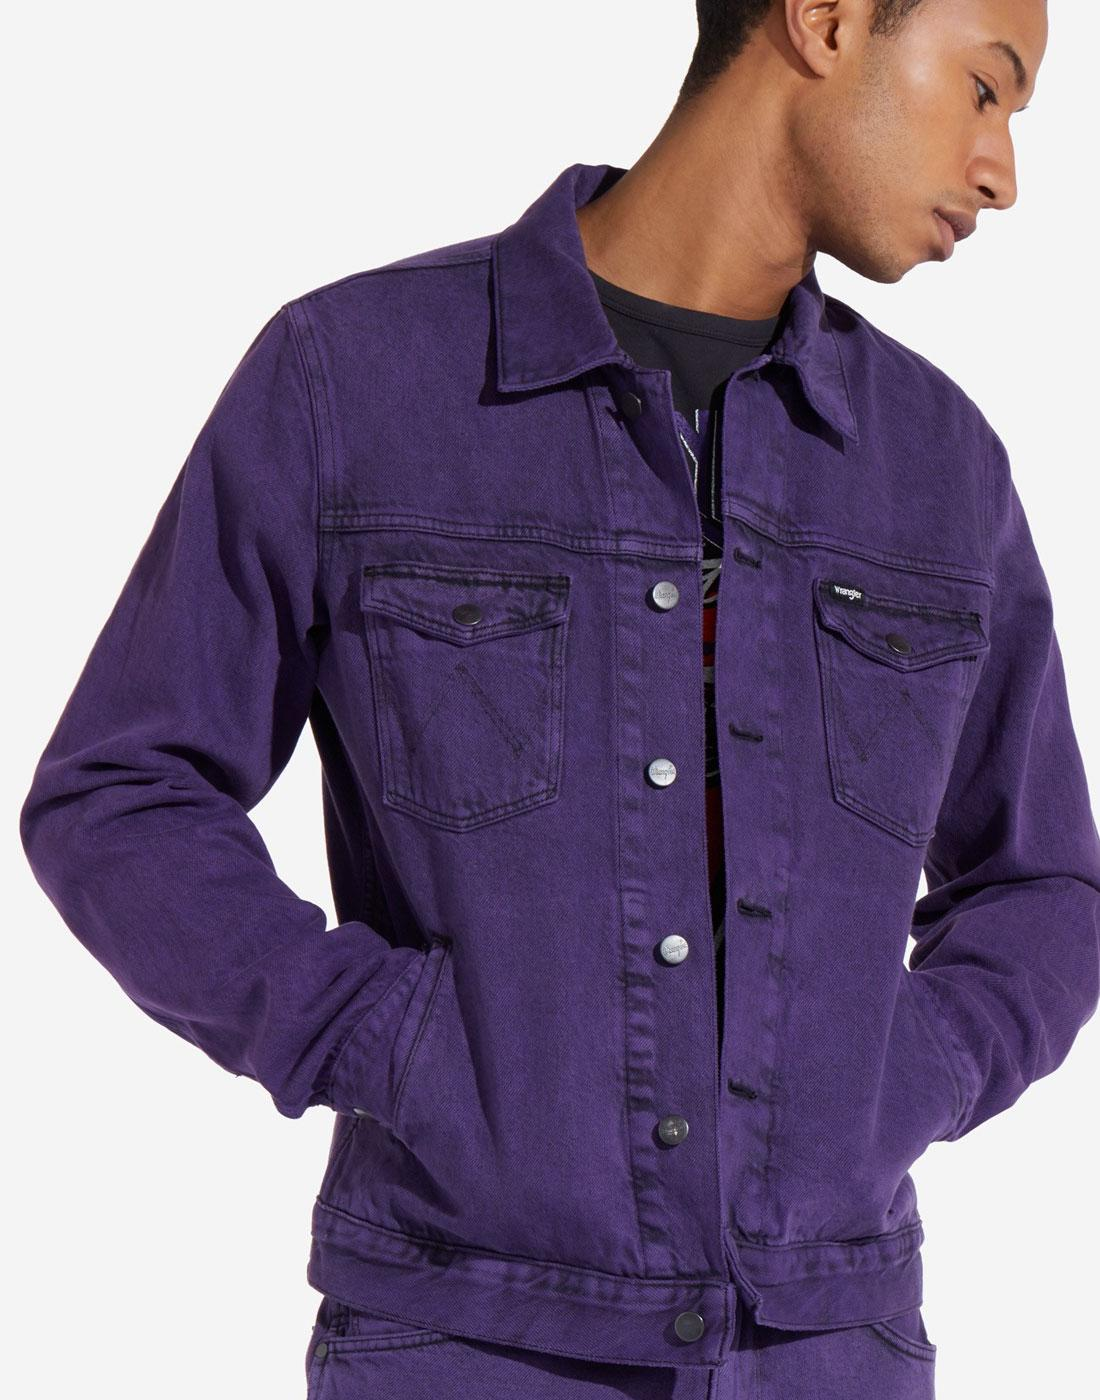 WRANGLER Retro 70s Purple Pop Regular Denim Jacket